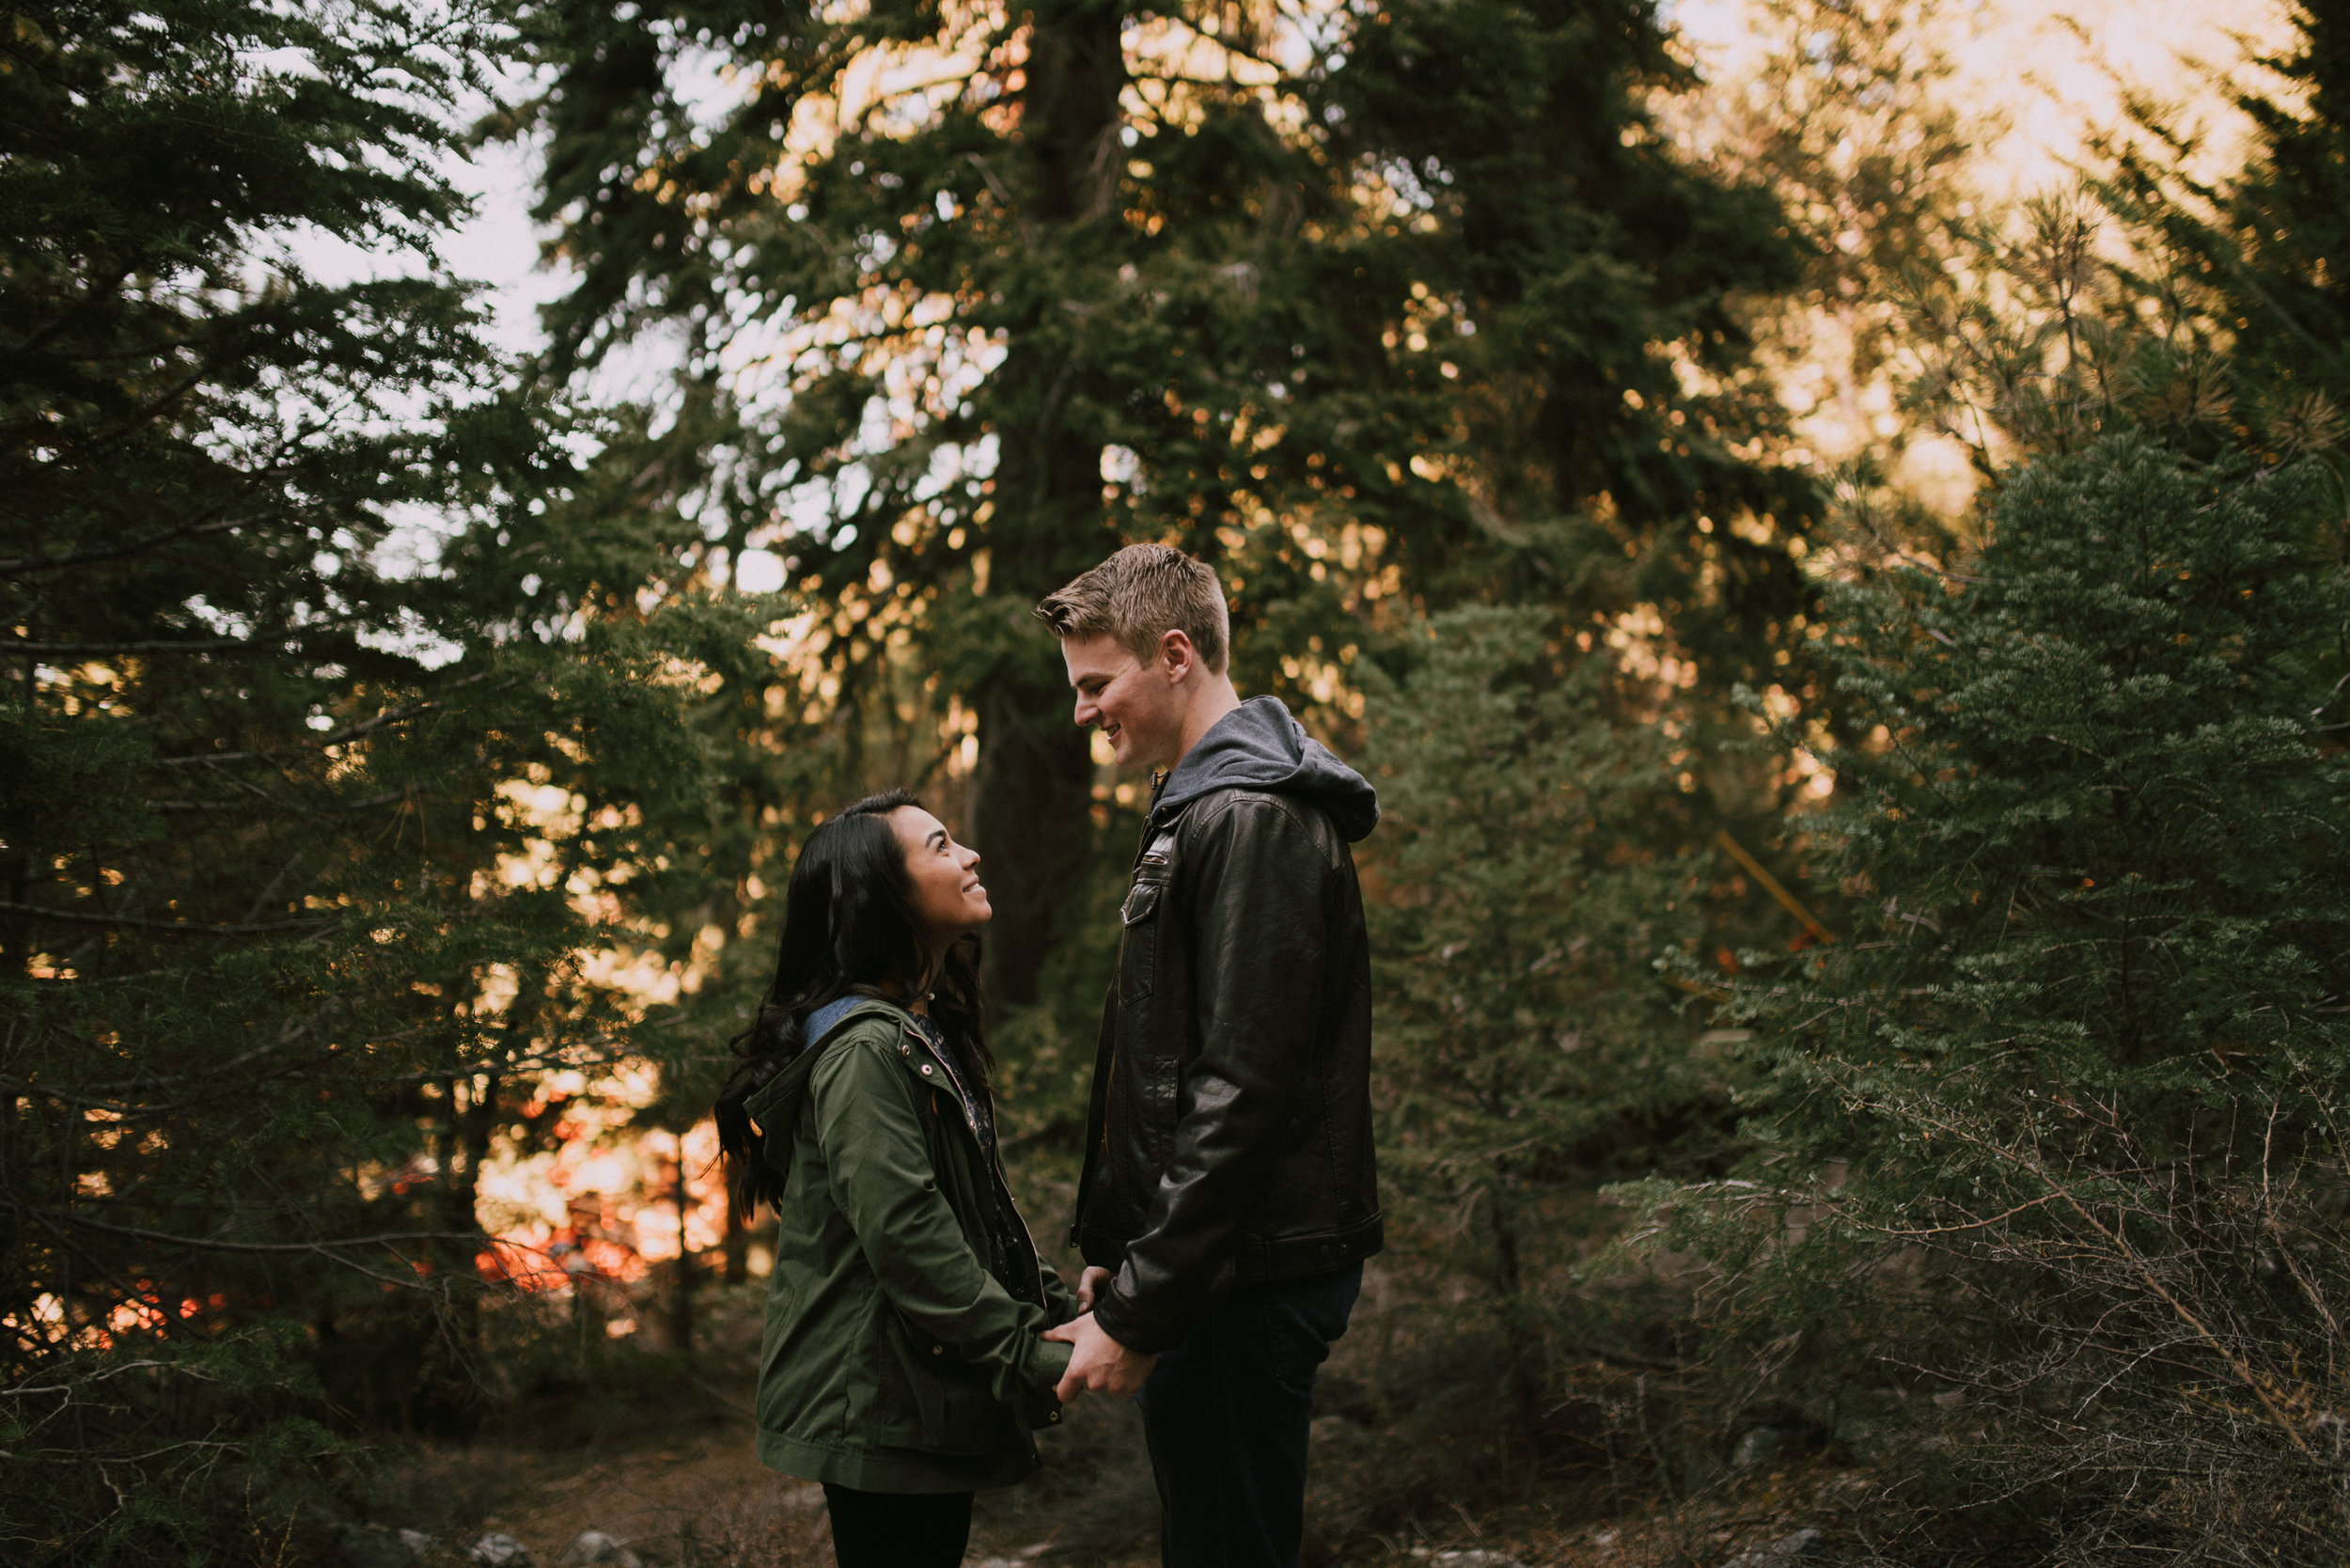 Kevin & Emily Engagment - Pine Mountain Club - Jake and Kim Photography-11.jpg